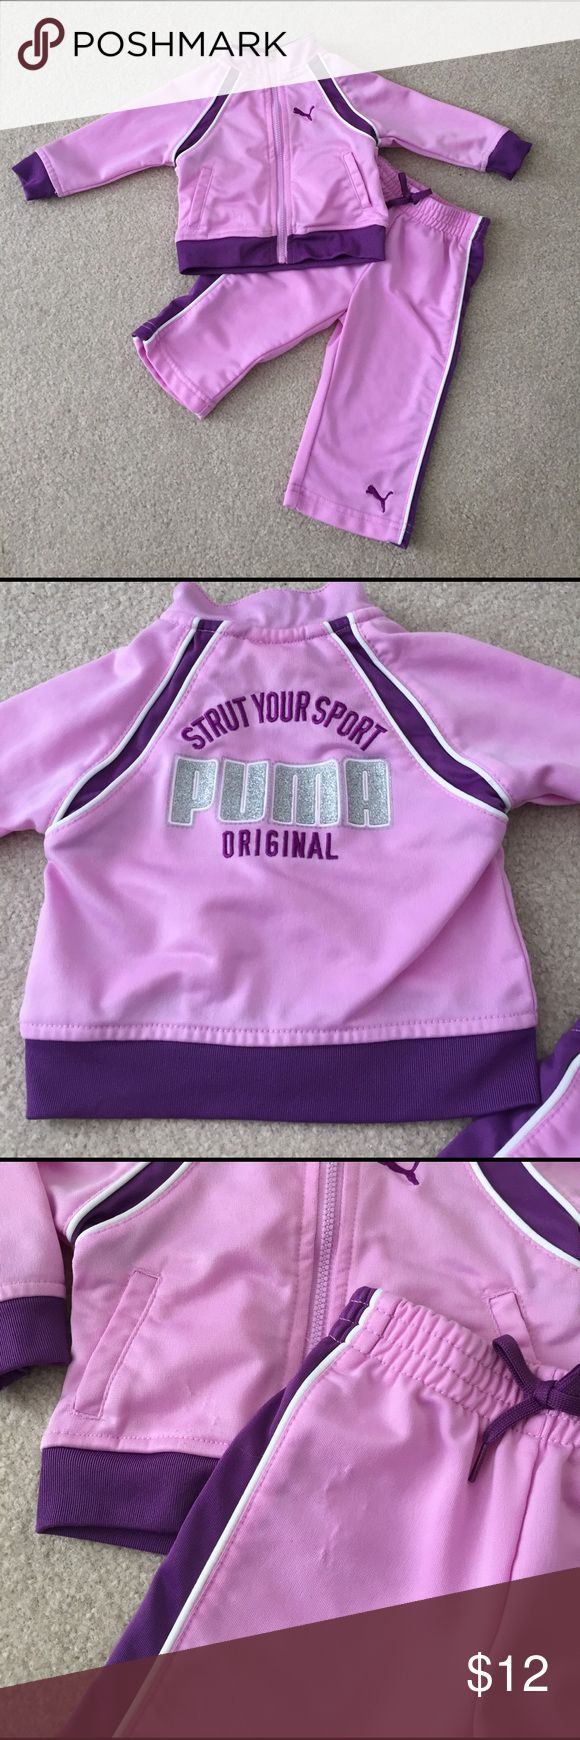 Puma Jogging Suit Puma Jogging suit (for the non-jogger 😂👶🏻🍼) in lavender/purple size 3-6 month. Great condition with slight snagging near the waist on jacket and pants. No stains or tears! Puma Matching Sets